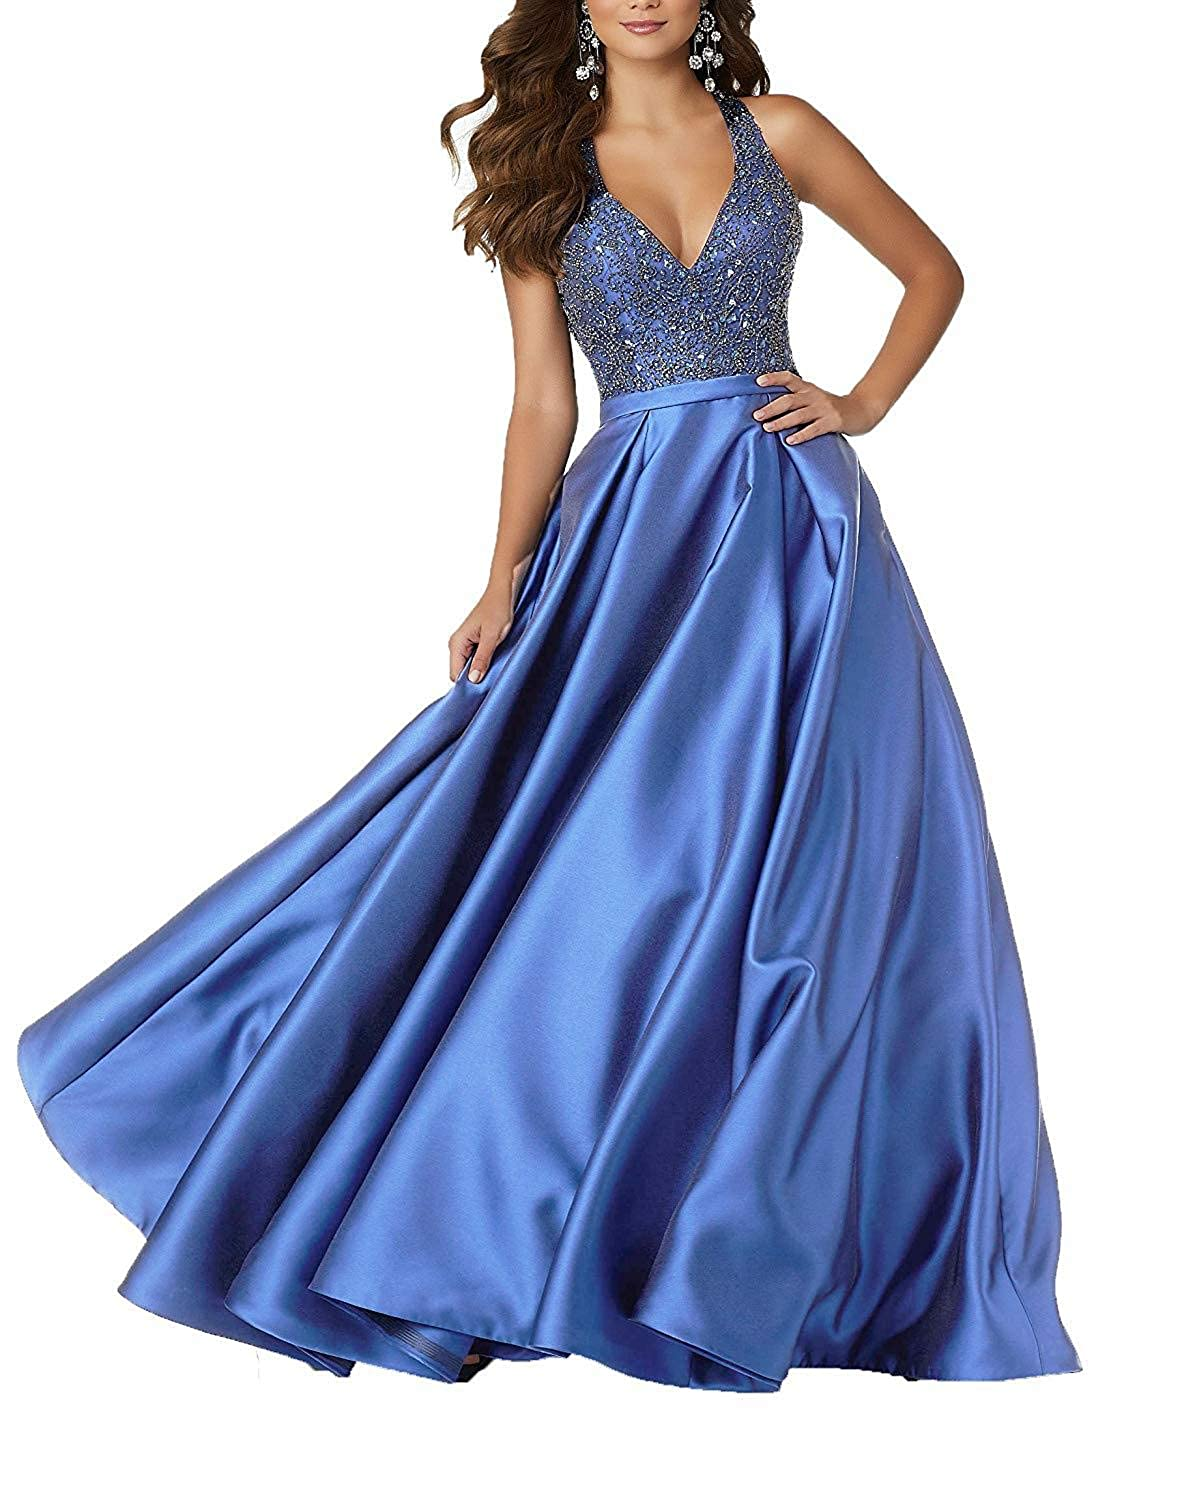 bluee Staypretty Long Prom Gowns for Women Beaded V Neck Evening Dress Satin Aline Backless Formal Gown